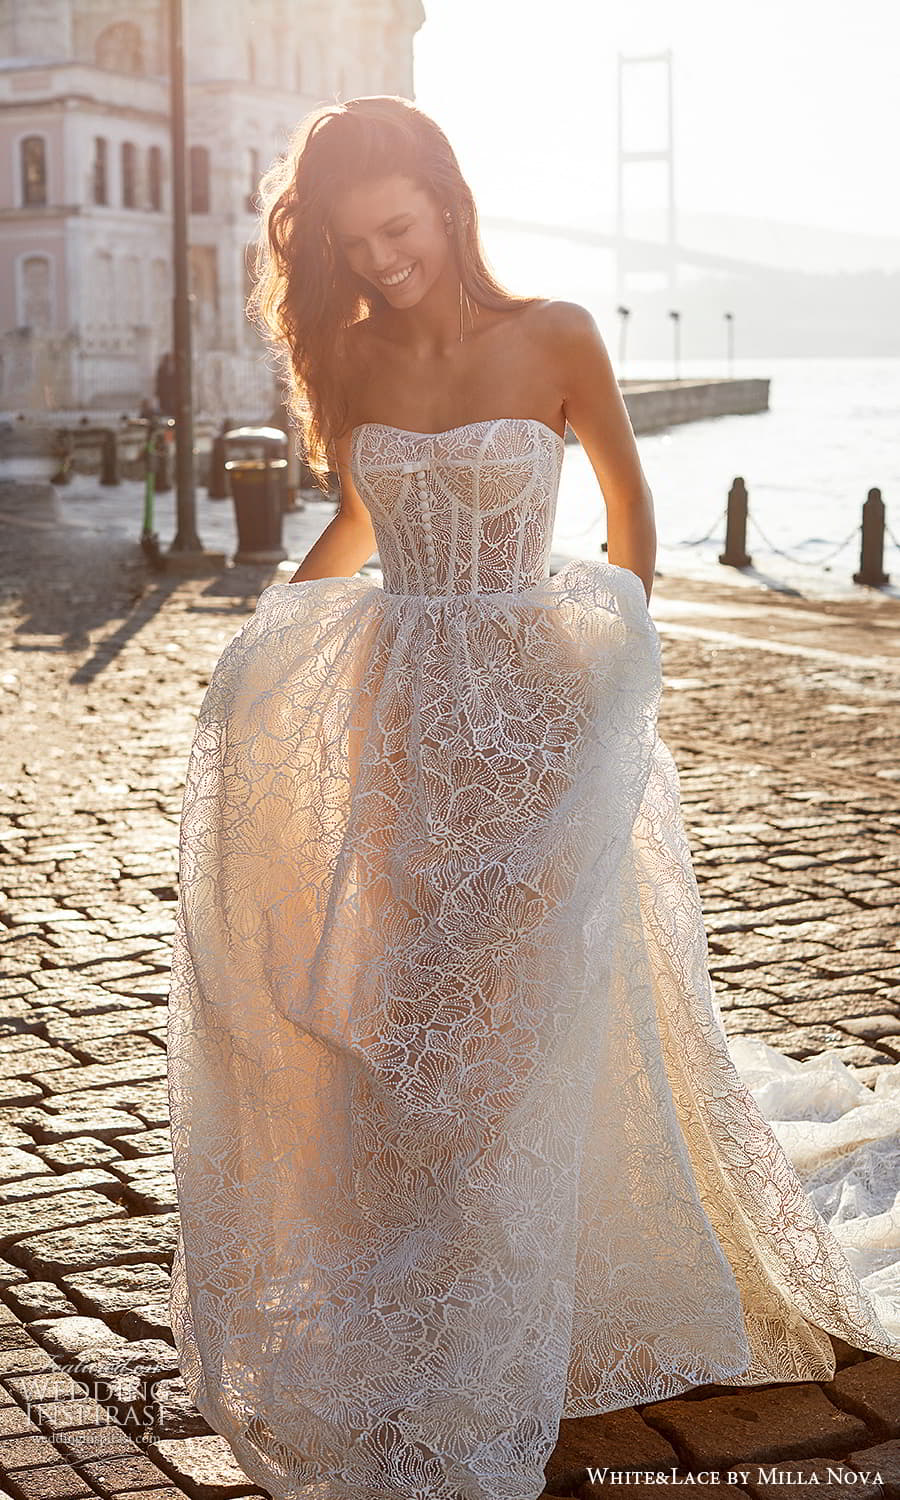 white lace milla nova 2022 bridal strapless sweetheart neckline fully embellished lace a line ball gown wedding dress chapel train (2) fv